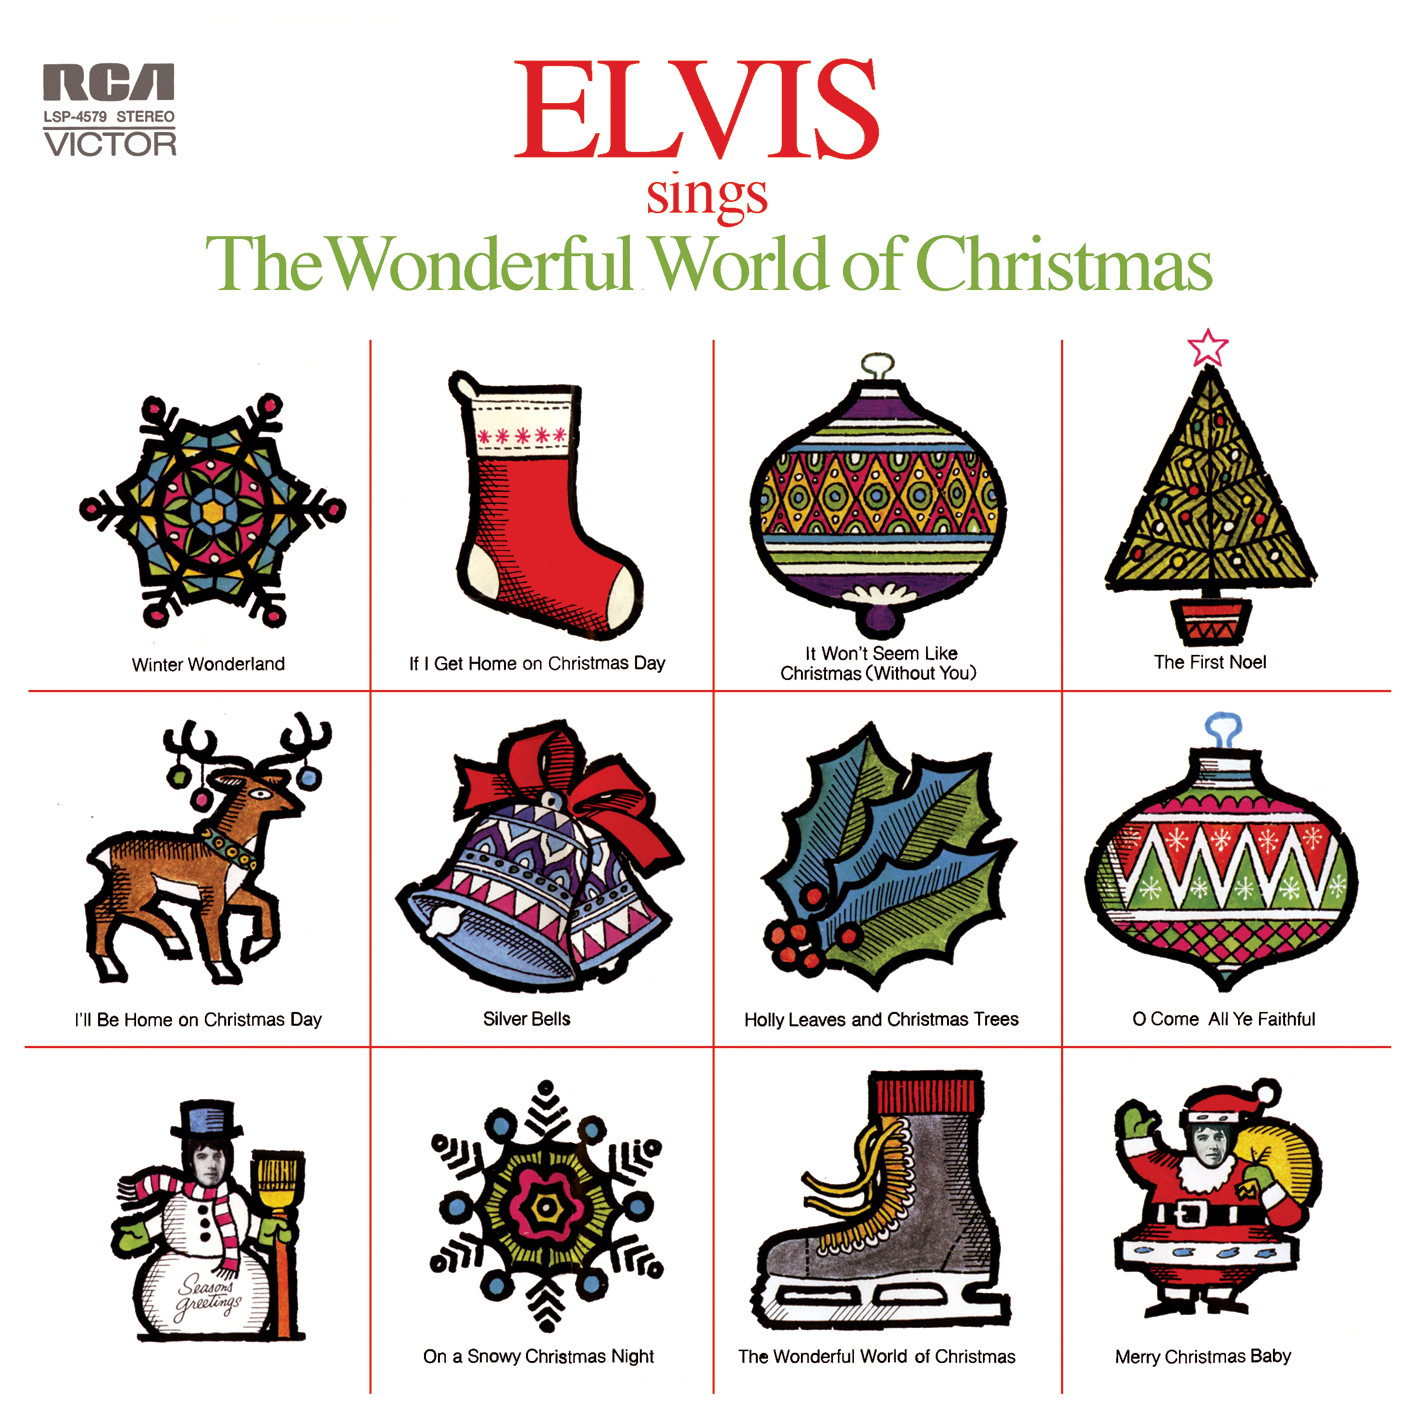 Elvis Today: Elvis Sings The Wonderful World Of Christmas - A Review